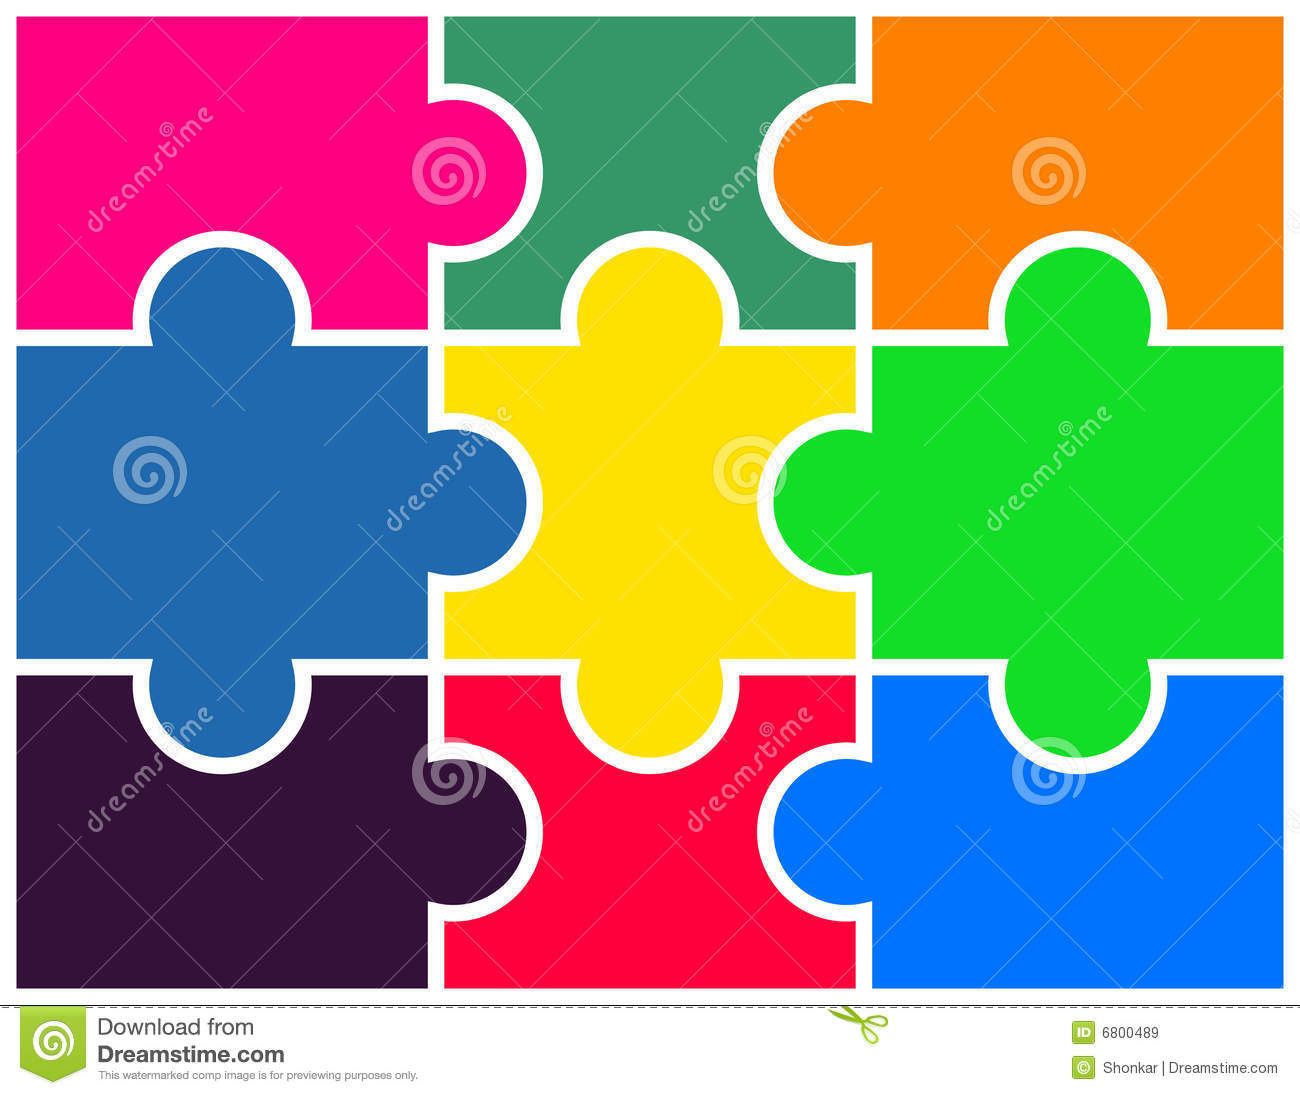 Puzzle Stock Vector Illustration Of Colored Organization